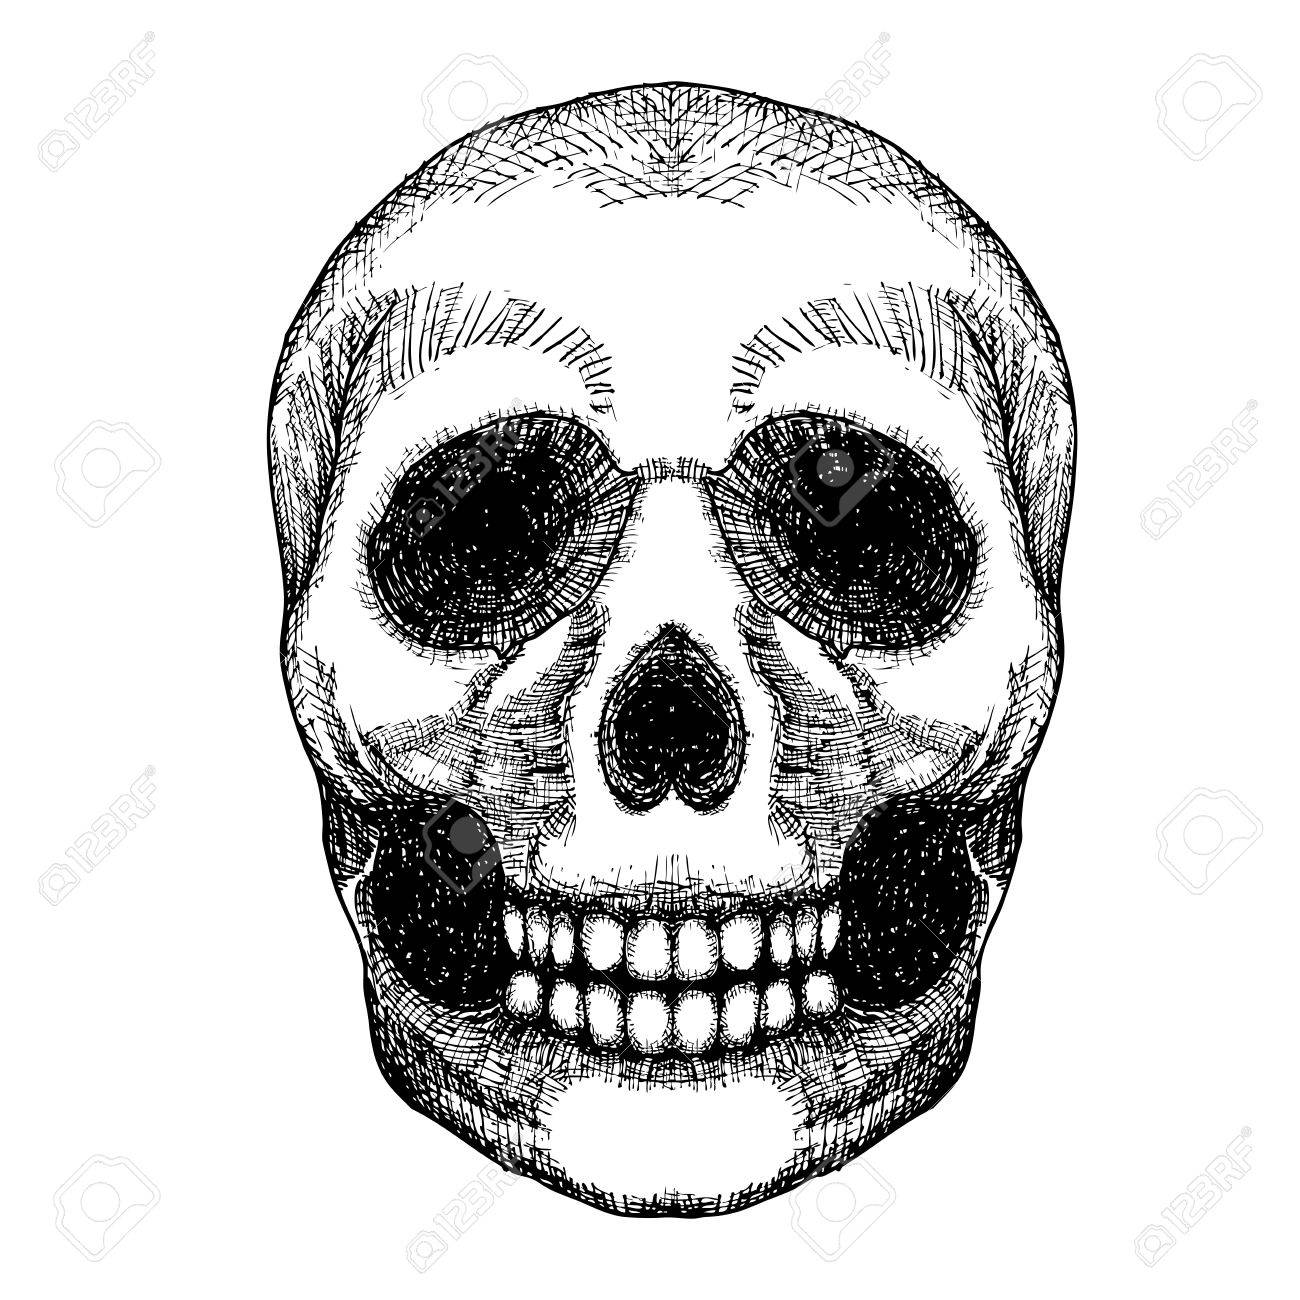 hand drawing skull human skull sketch black and white illustration of skull with a